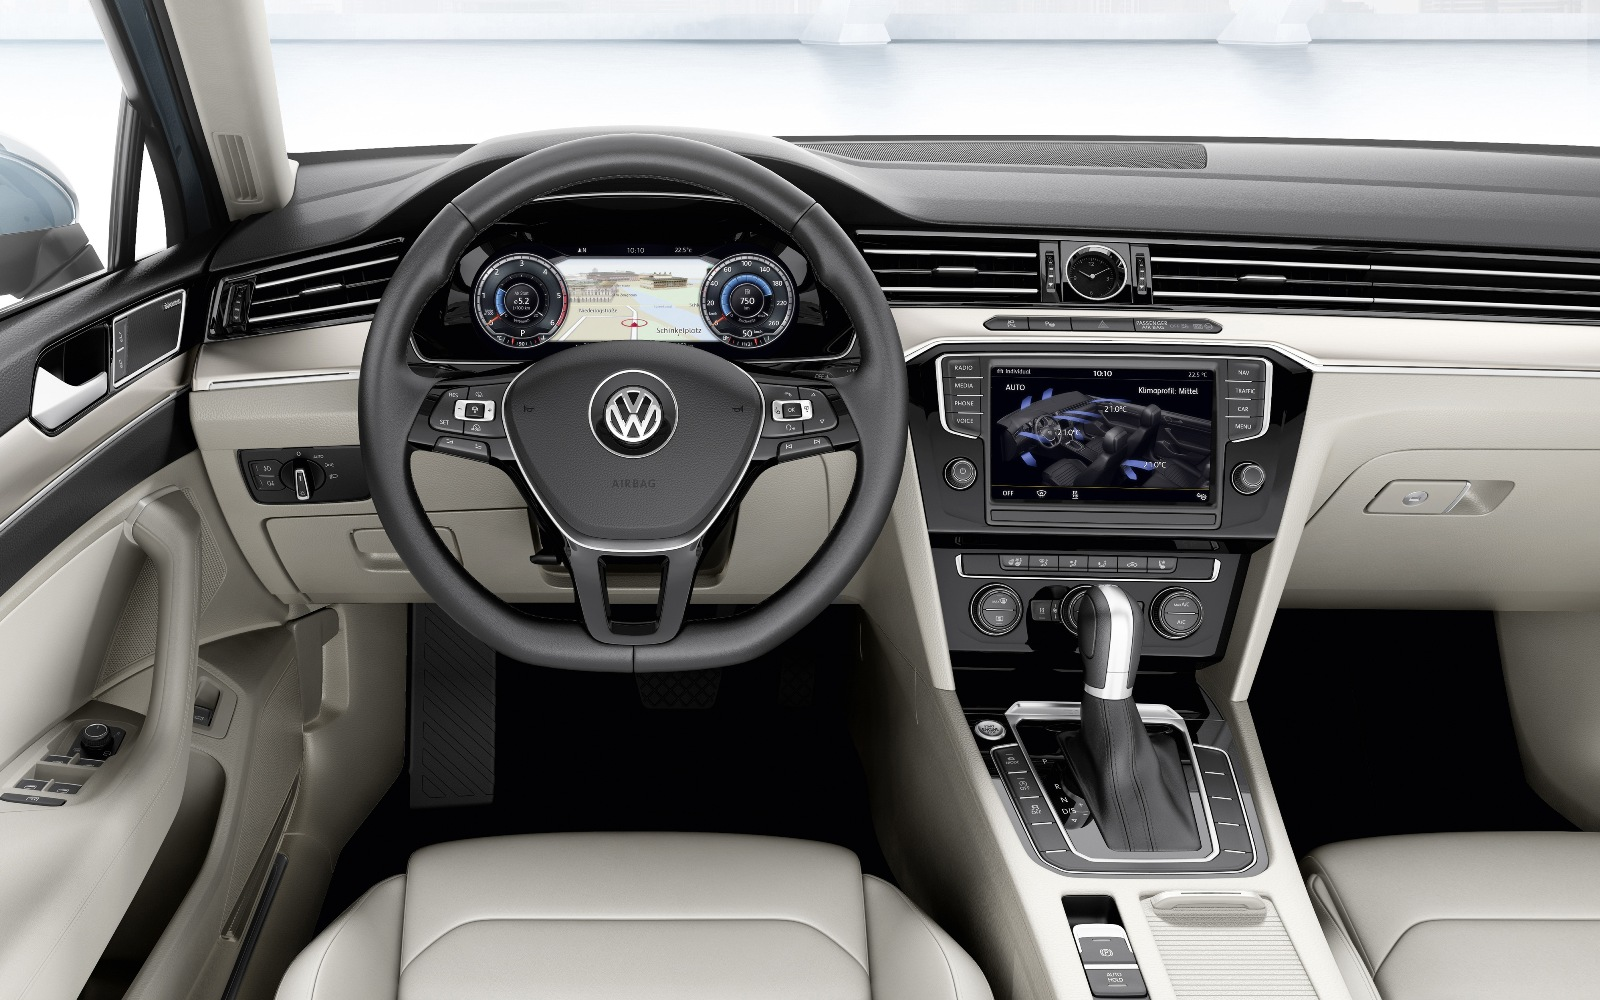 Volkswagen Passat 2014 Dashboard FrontSeatDriver.co.uk